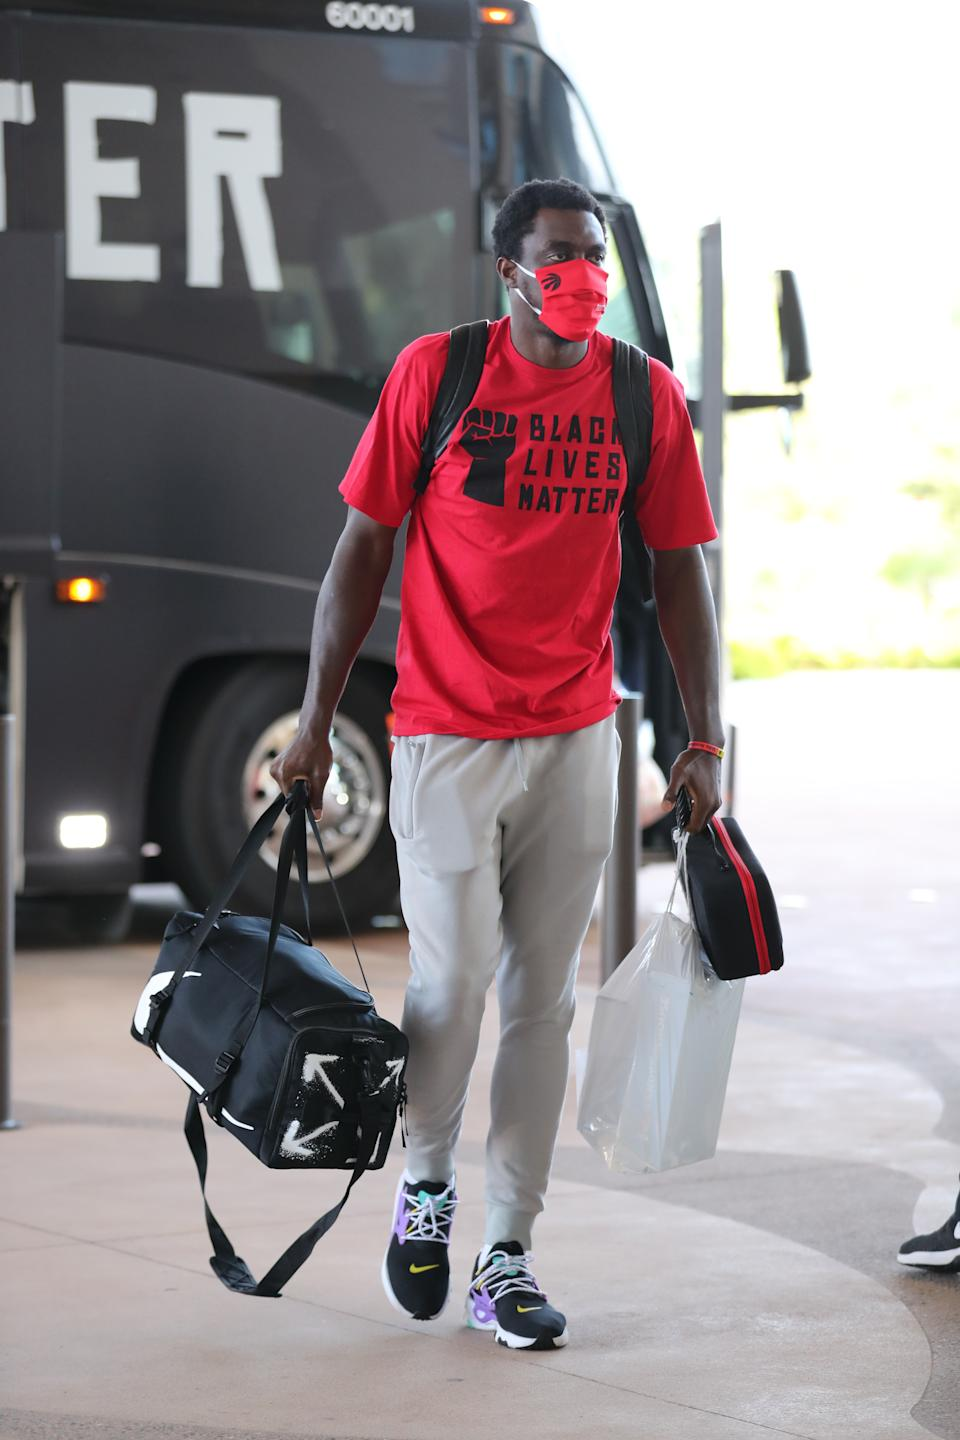 Pascal Siakam #43 of the Toronto Raptors arrives at the hotel as part of the NBA Restart 2020 on July 9, 2020 in Orlando, Florida. (Photo by Joe Murphy/NBAE via Getty Images)